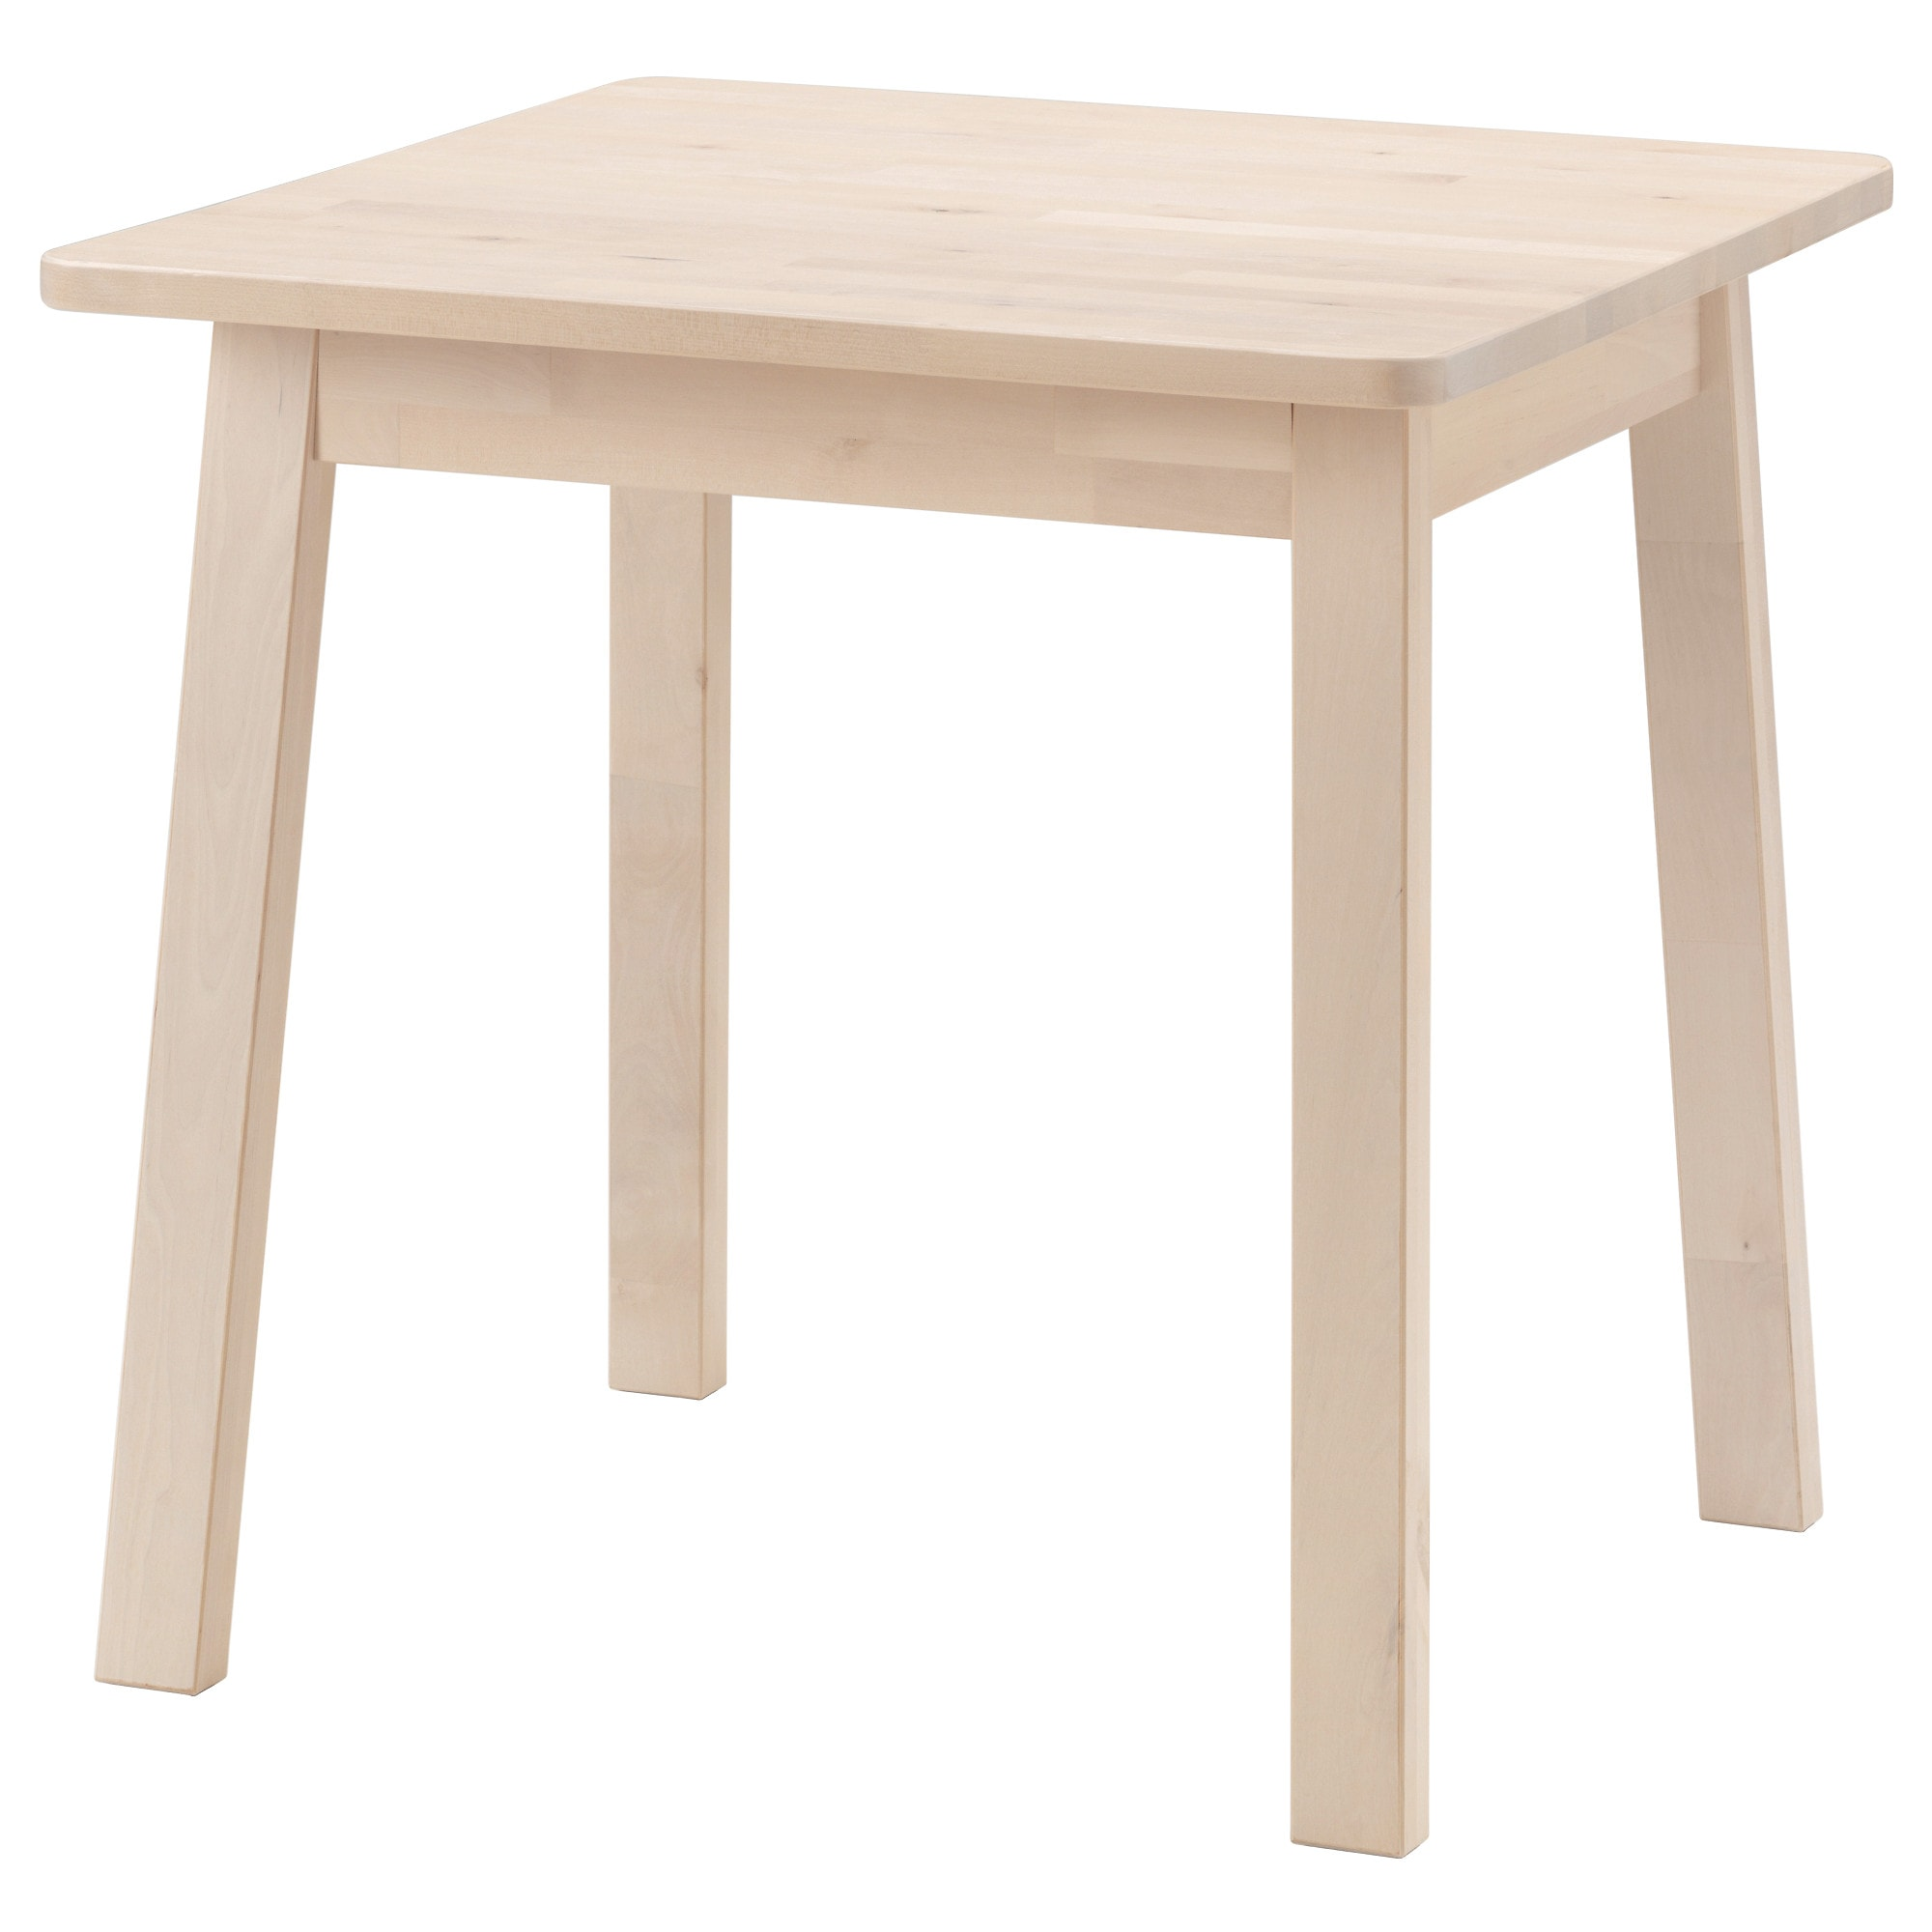 Superieur NORRÅKER Table